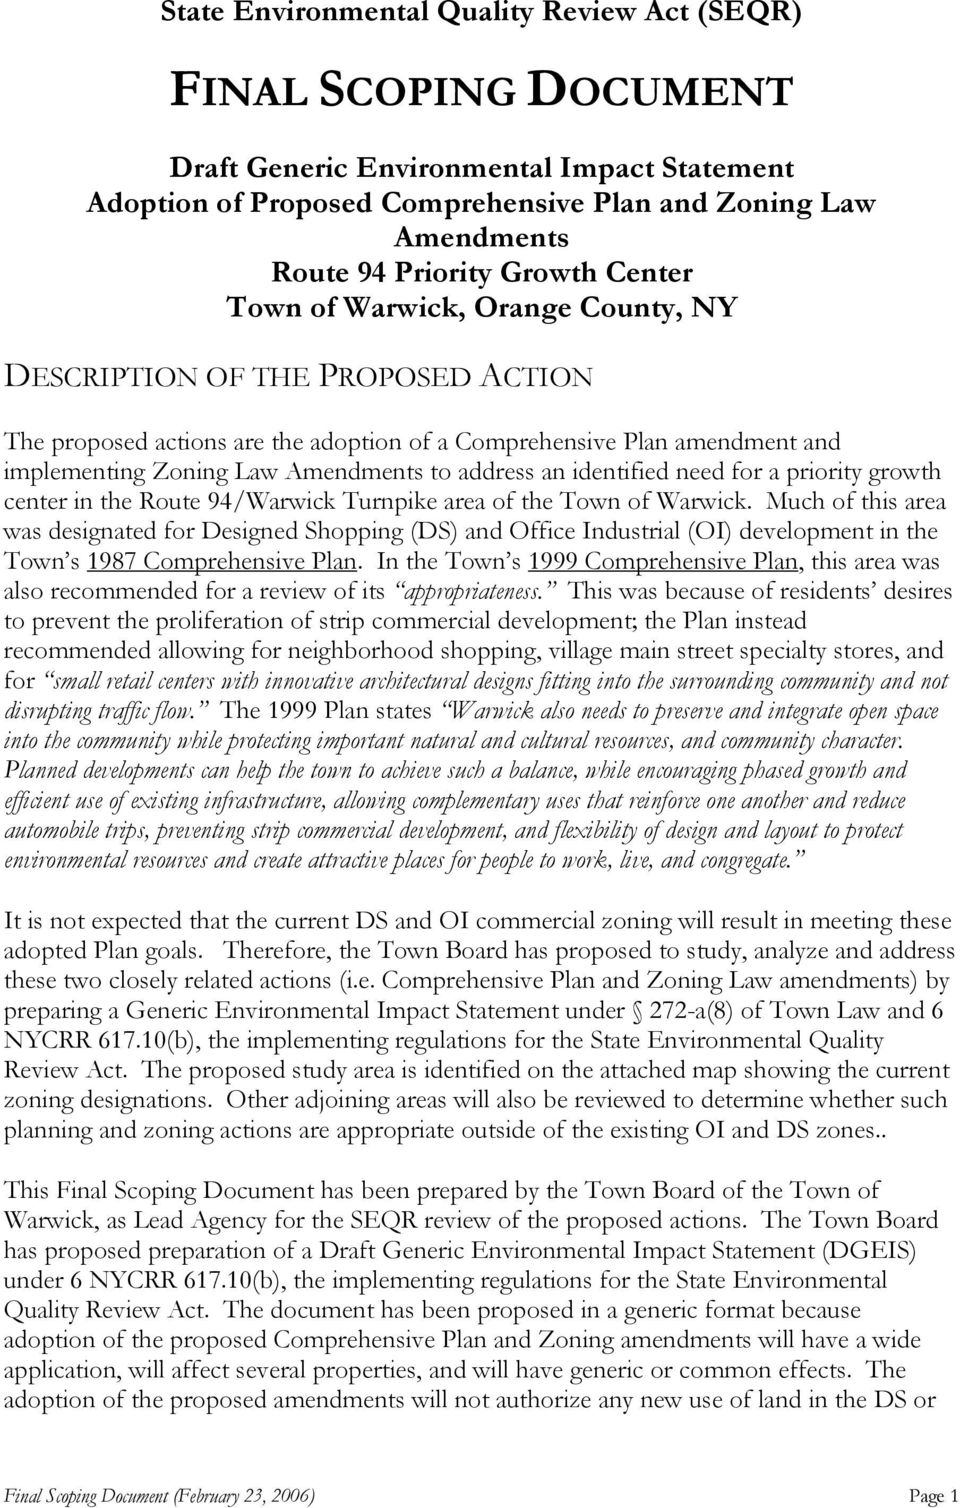 address an identified need for a priority growth center in the Route 94/Warwick Turnpike area of the Town of Warwick.